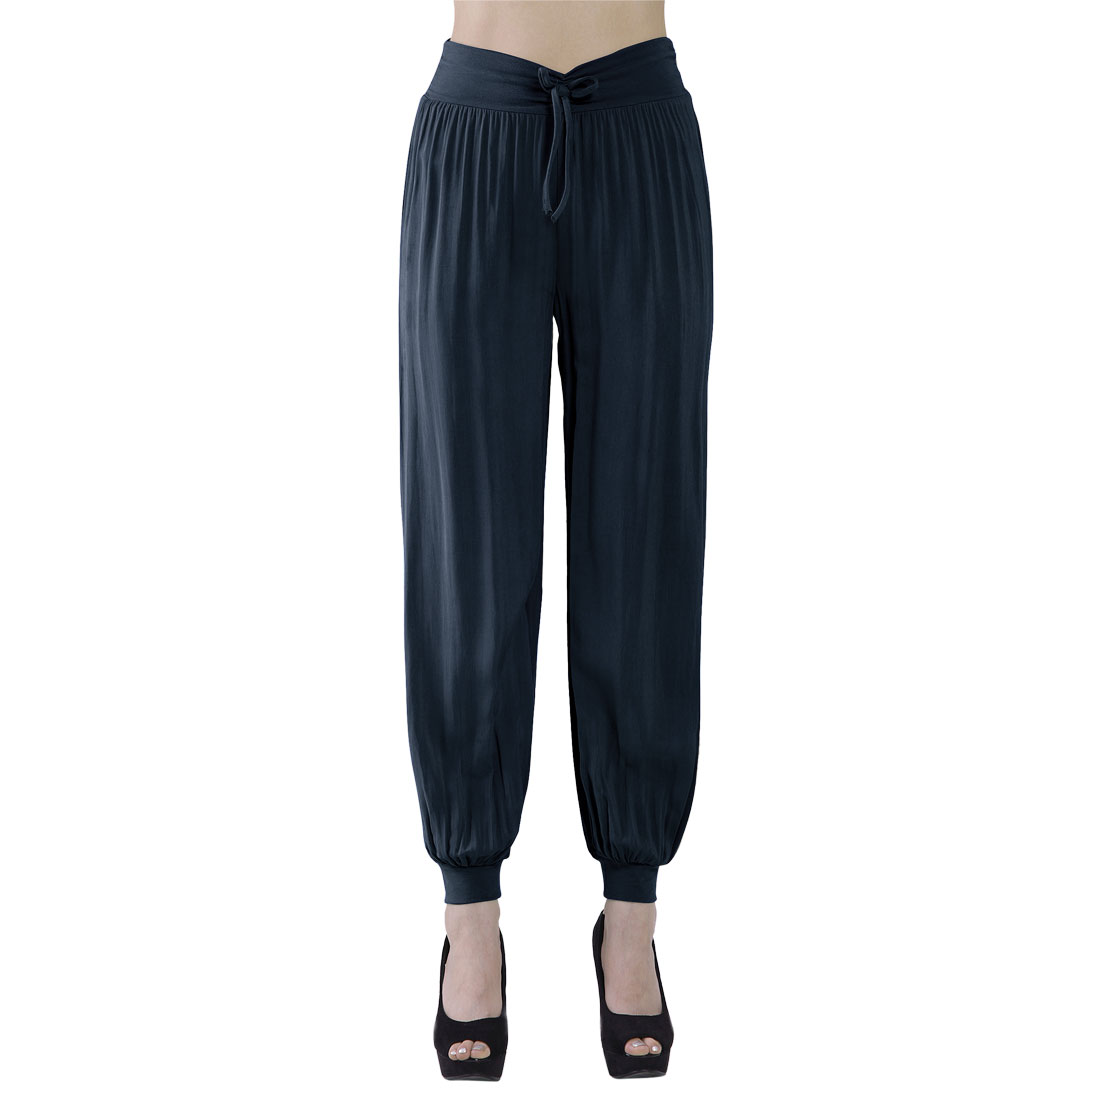 Women Summer Loose Ruffled Elastic Cuff Pants Trousers Navy Blue S